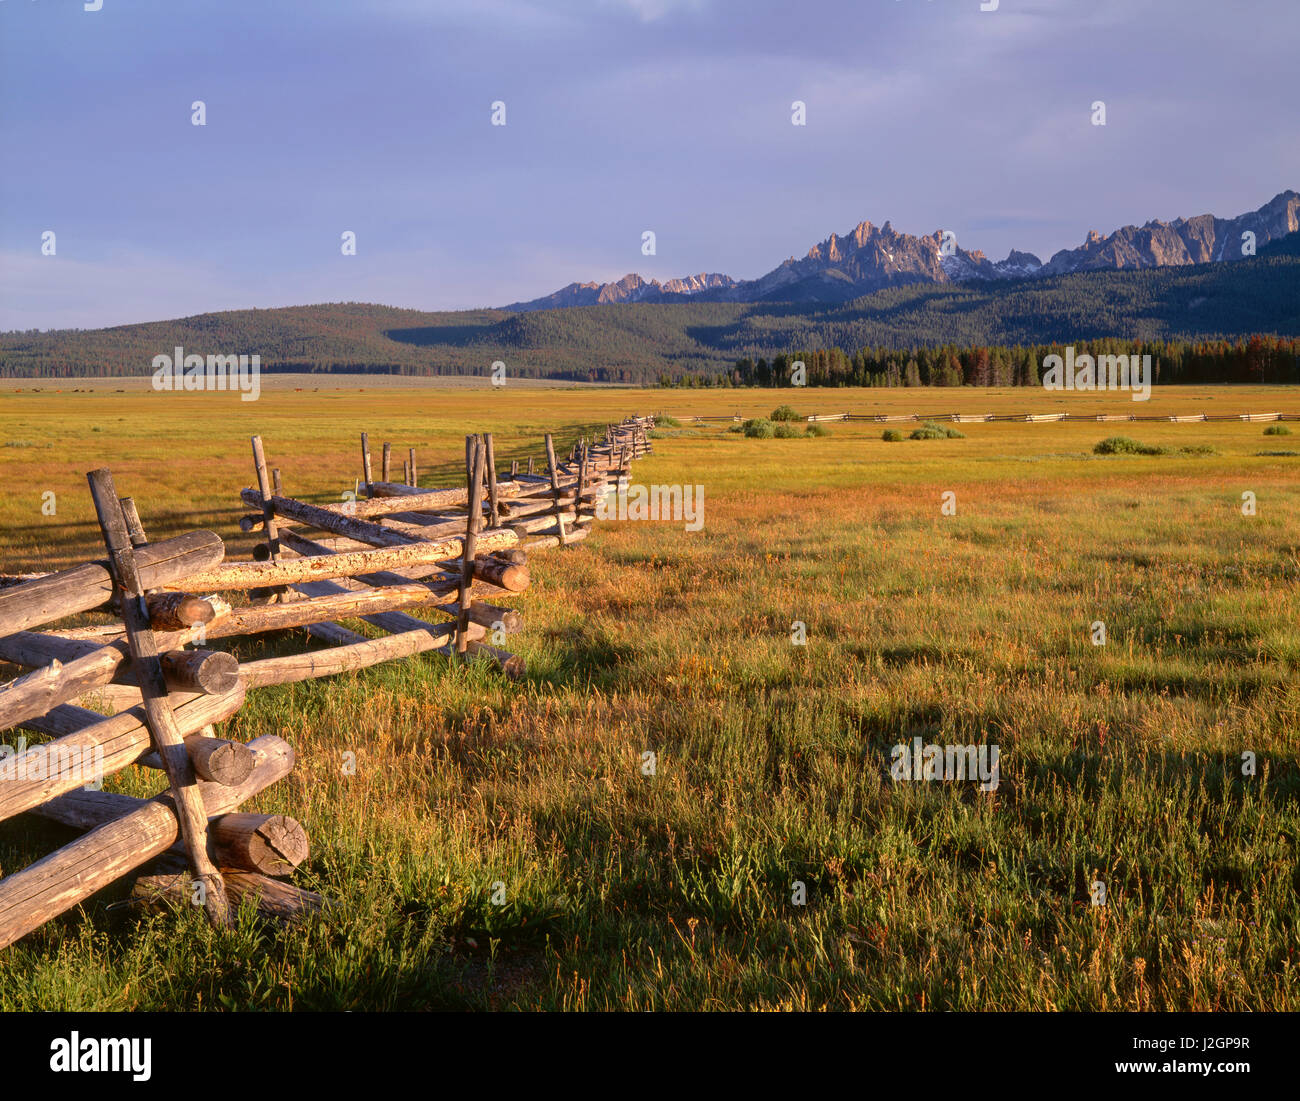 USA, Idaho, Sawtooth National Recreation Area, Weathered fence crosses pastureland beneath forested hills and peaks - Stock Image